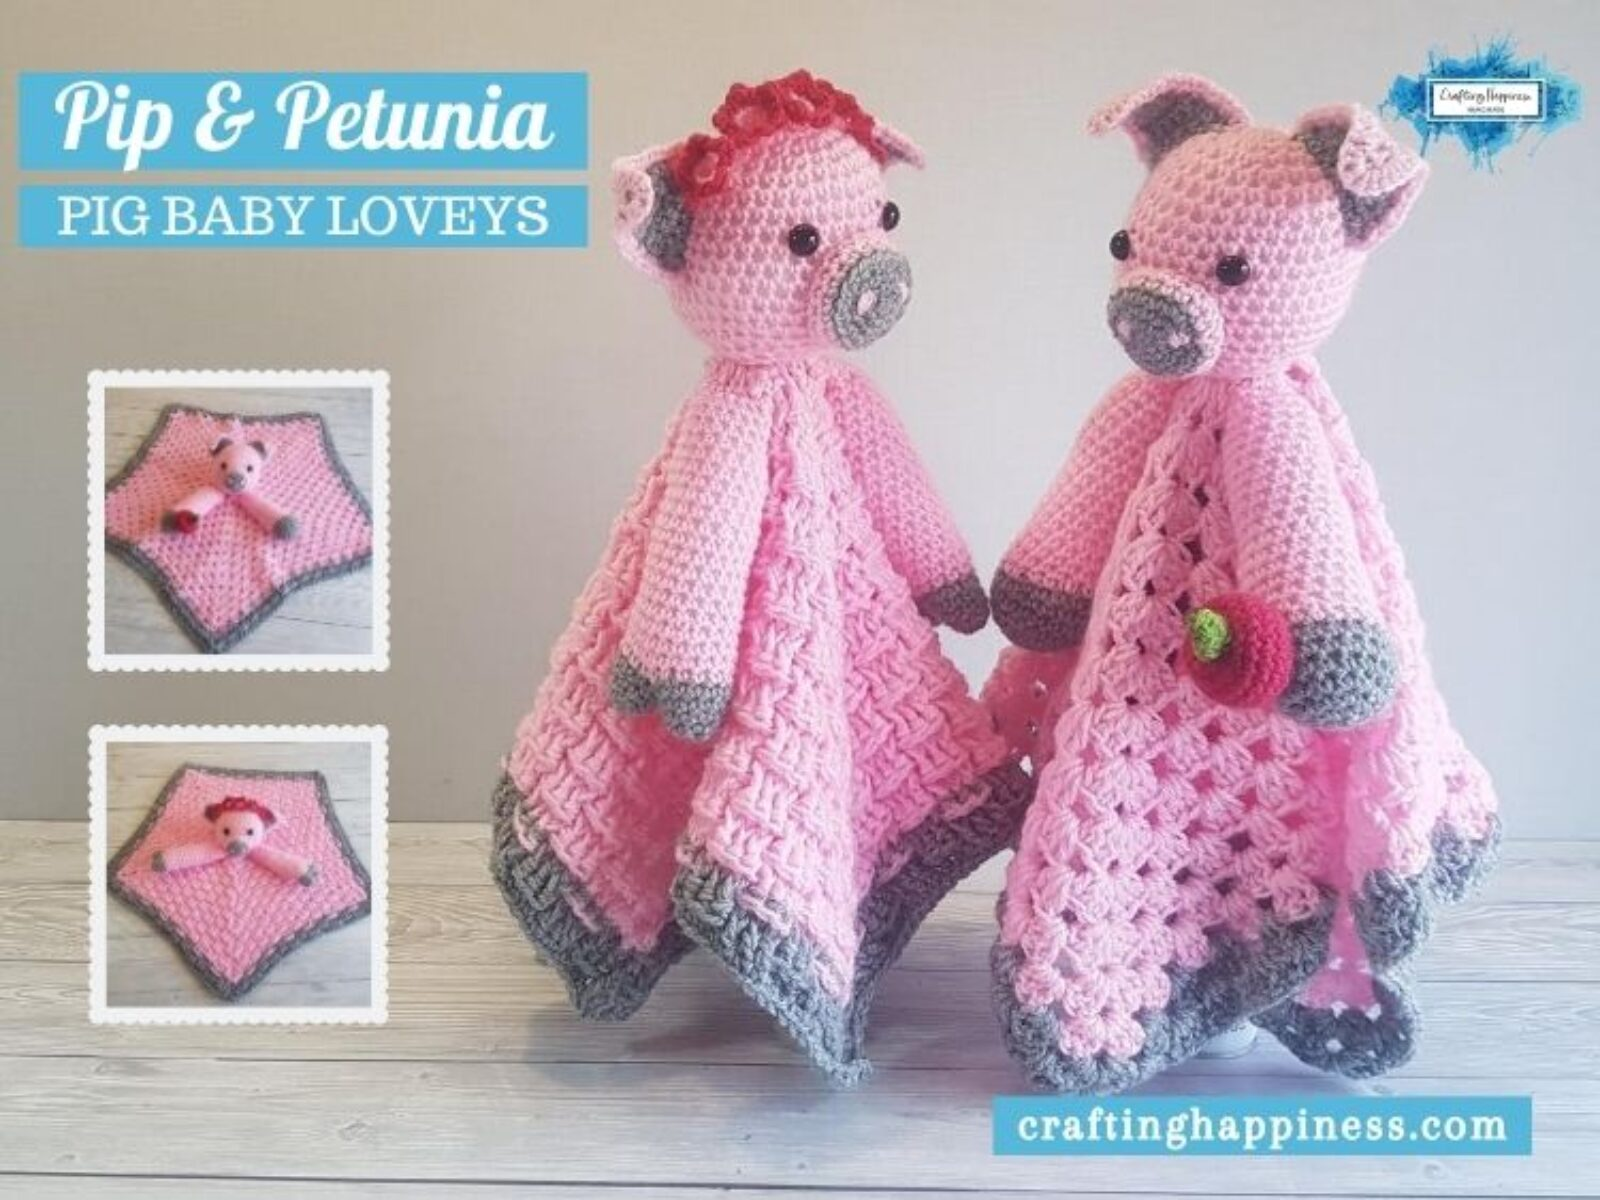 Pip & Petunia Baby Lovey - FACEBOOK POSTER